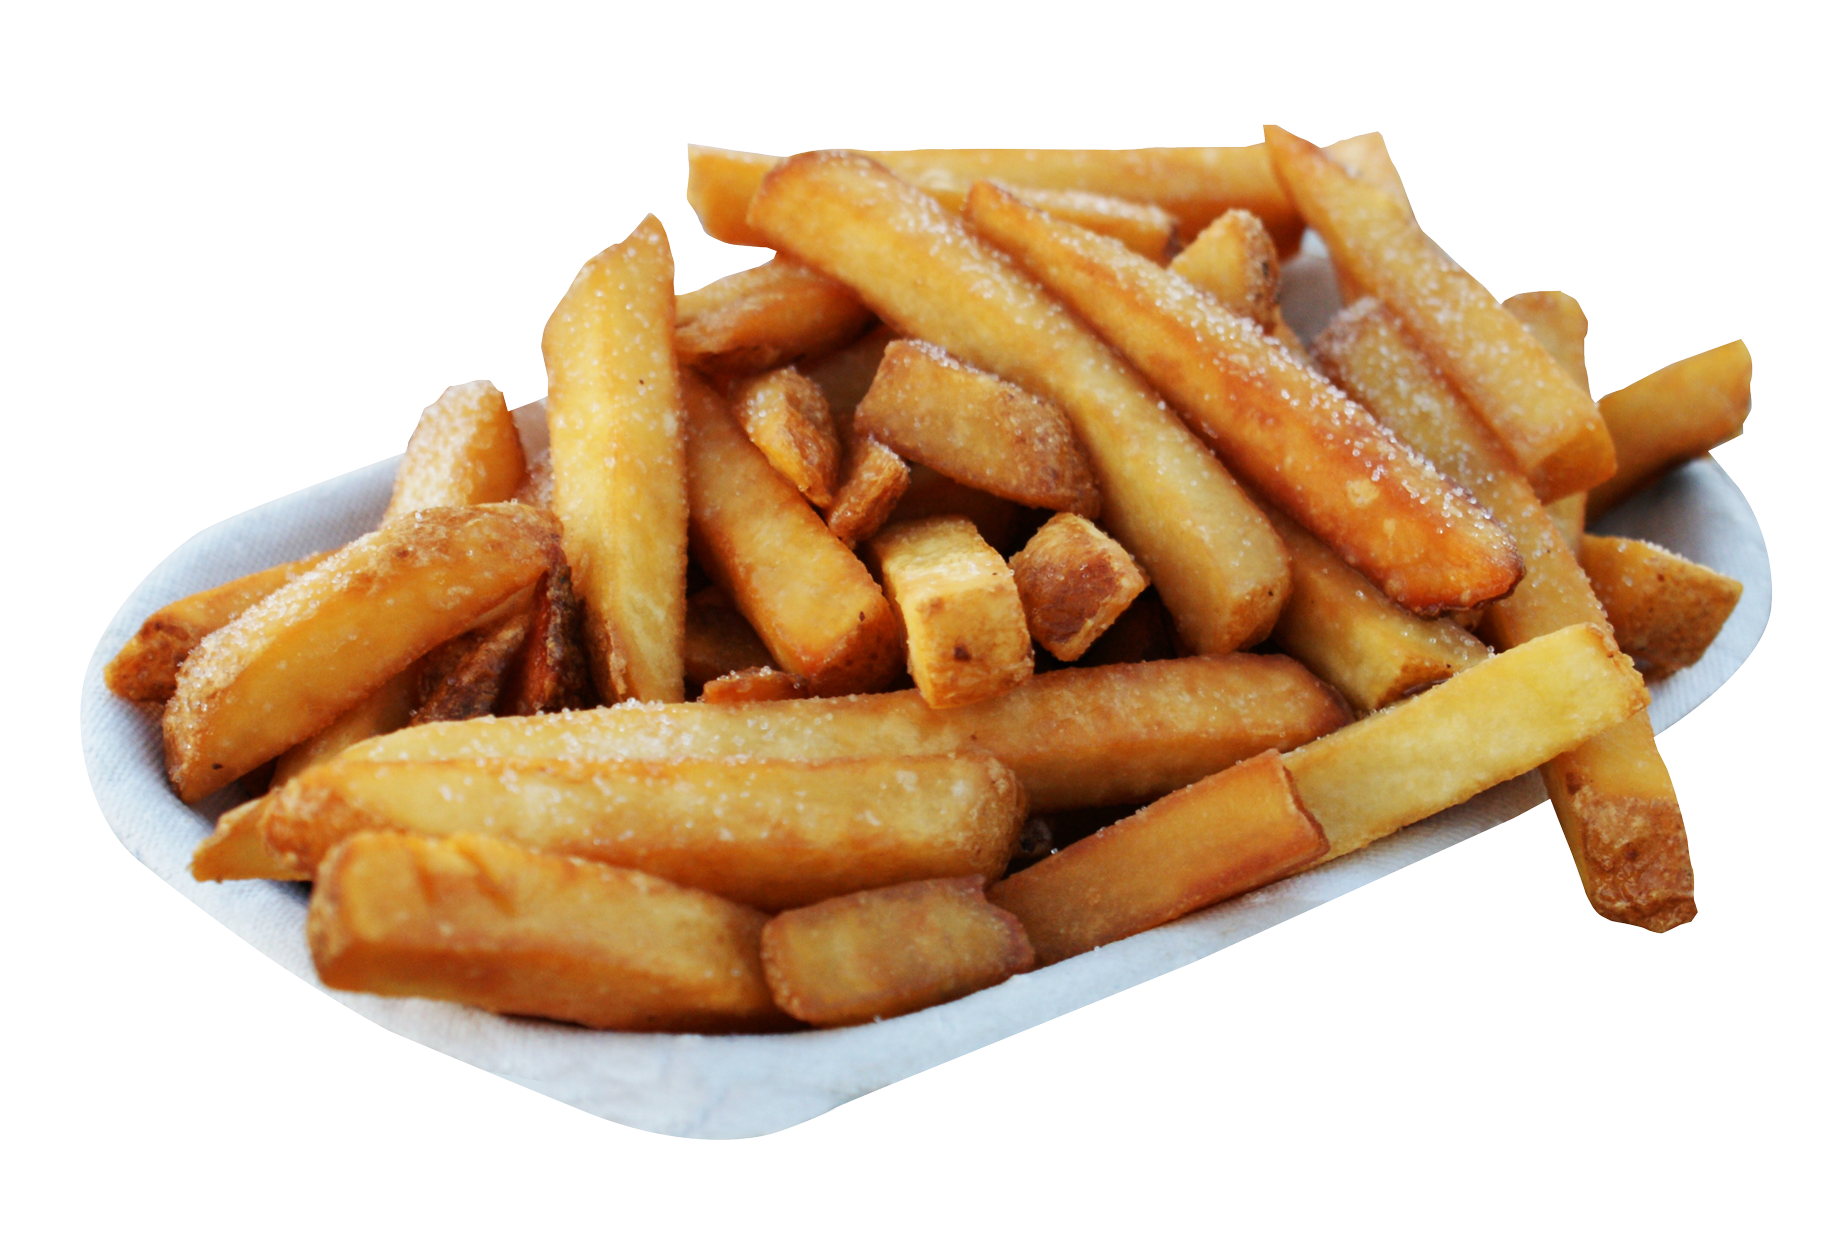 Mcfries Mcdonald S French Fries Large Hd Png Download Is Free Transparent Png Image Download And Mcdonald French Fries Mcdonalds Fries French Fries Images